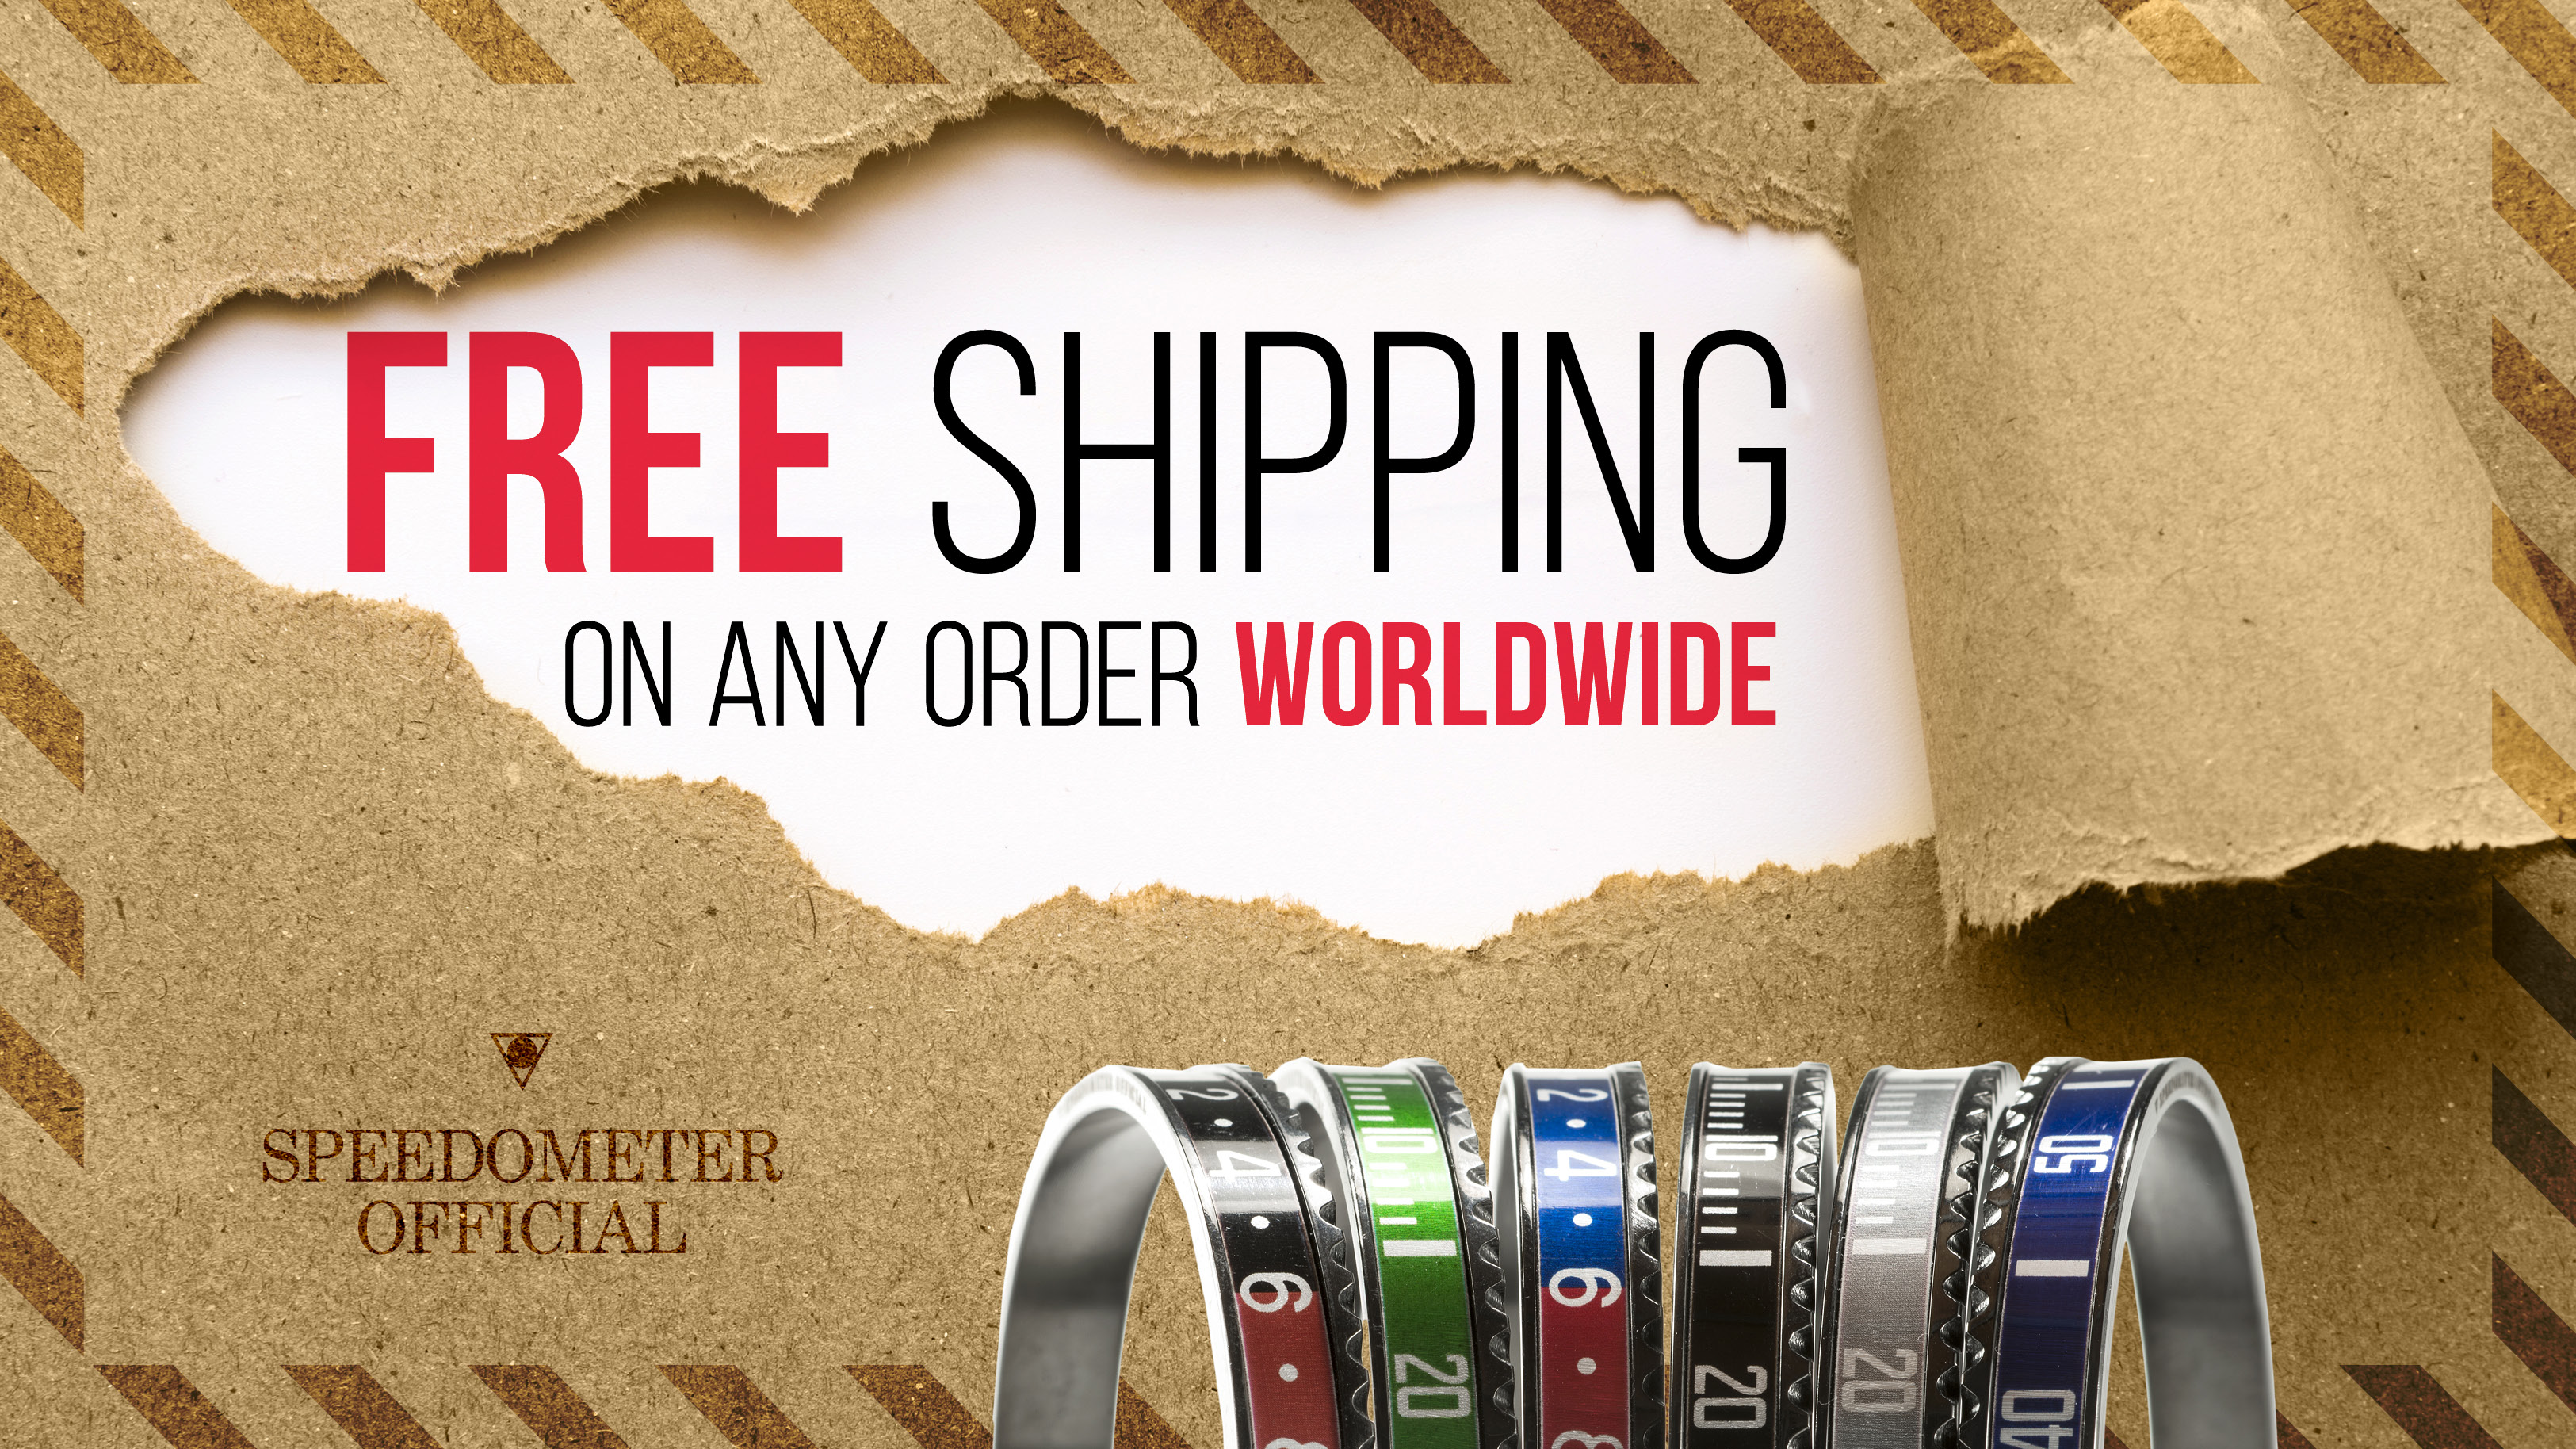 Free shipping on any order worldwide